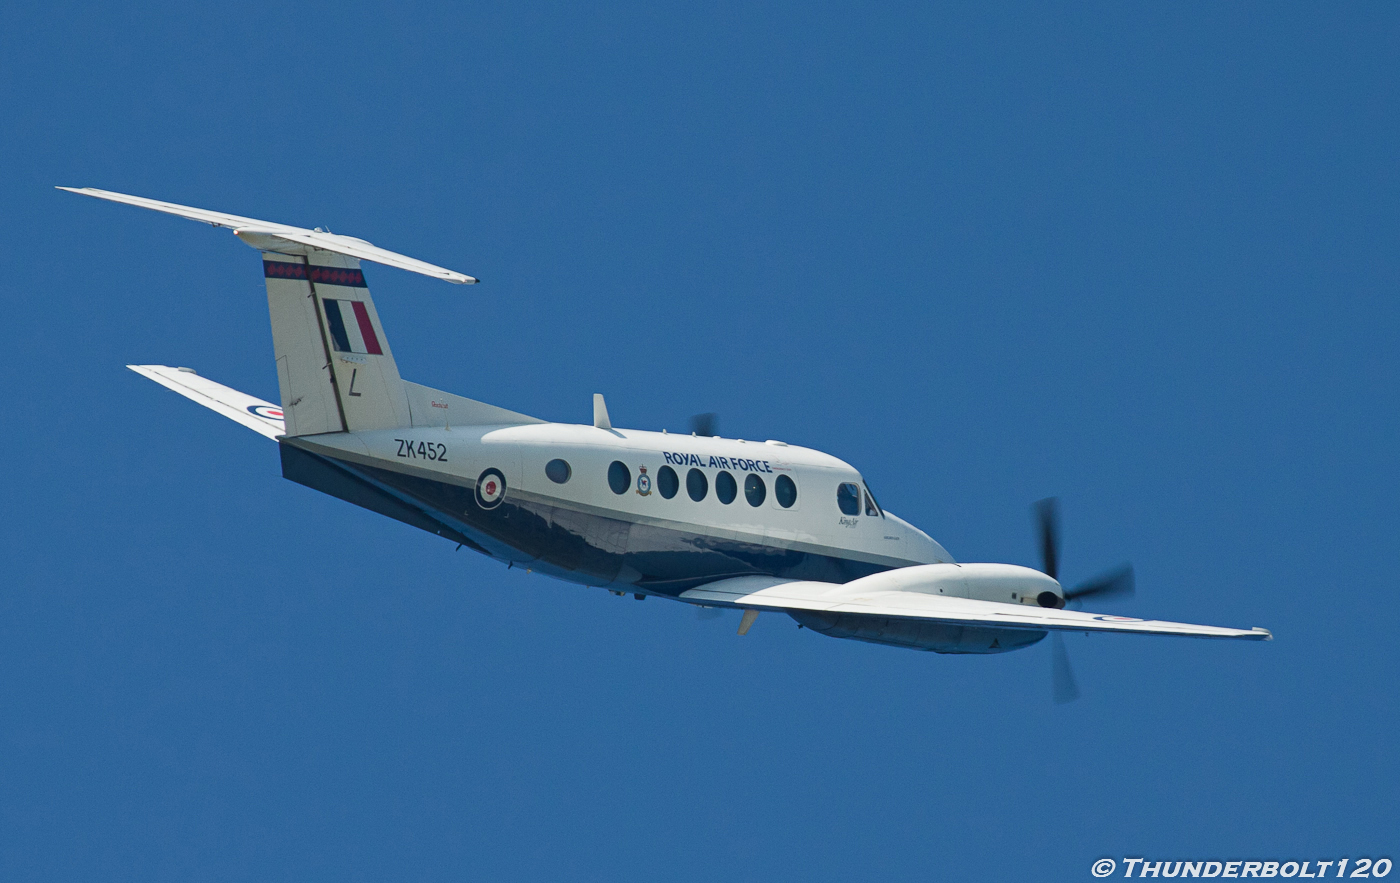 B200 King Air ZK452